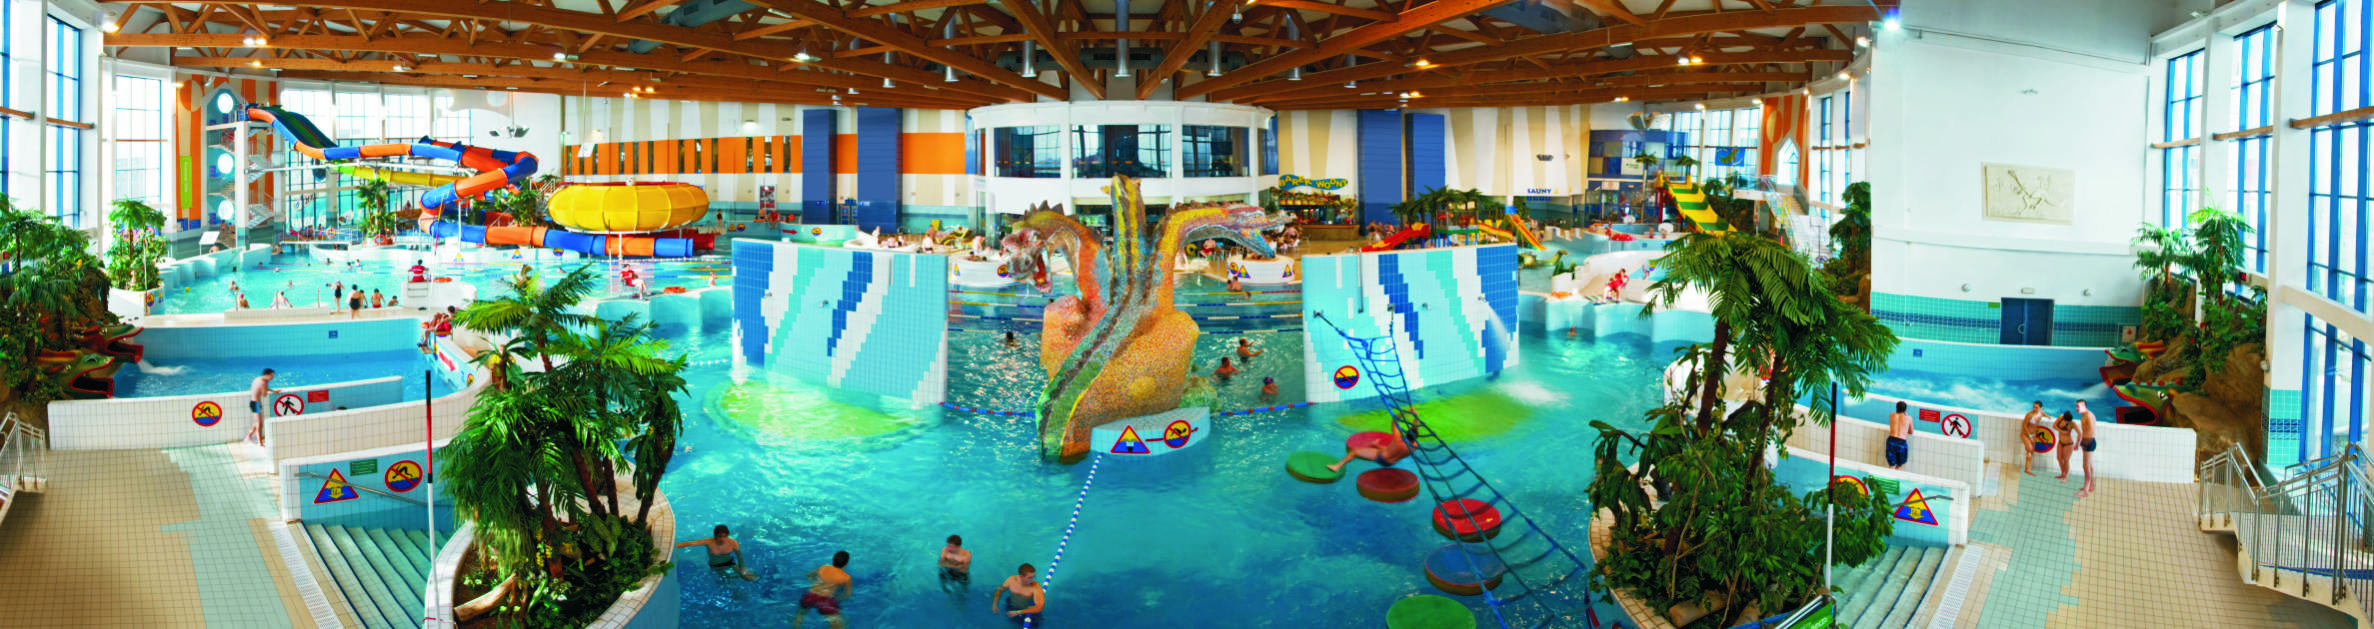 If you like swimming, Krakow water park is perfect place for you. Don't be misleaded, it's fun for both younger and older.